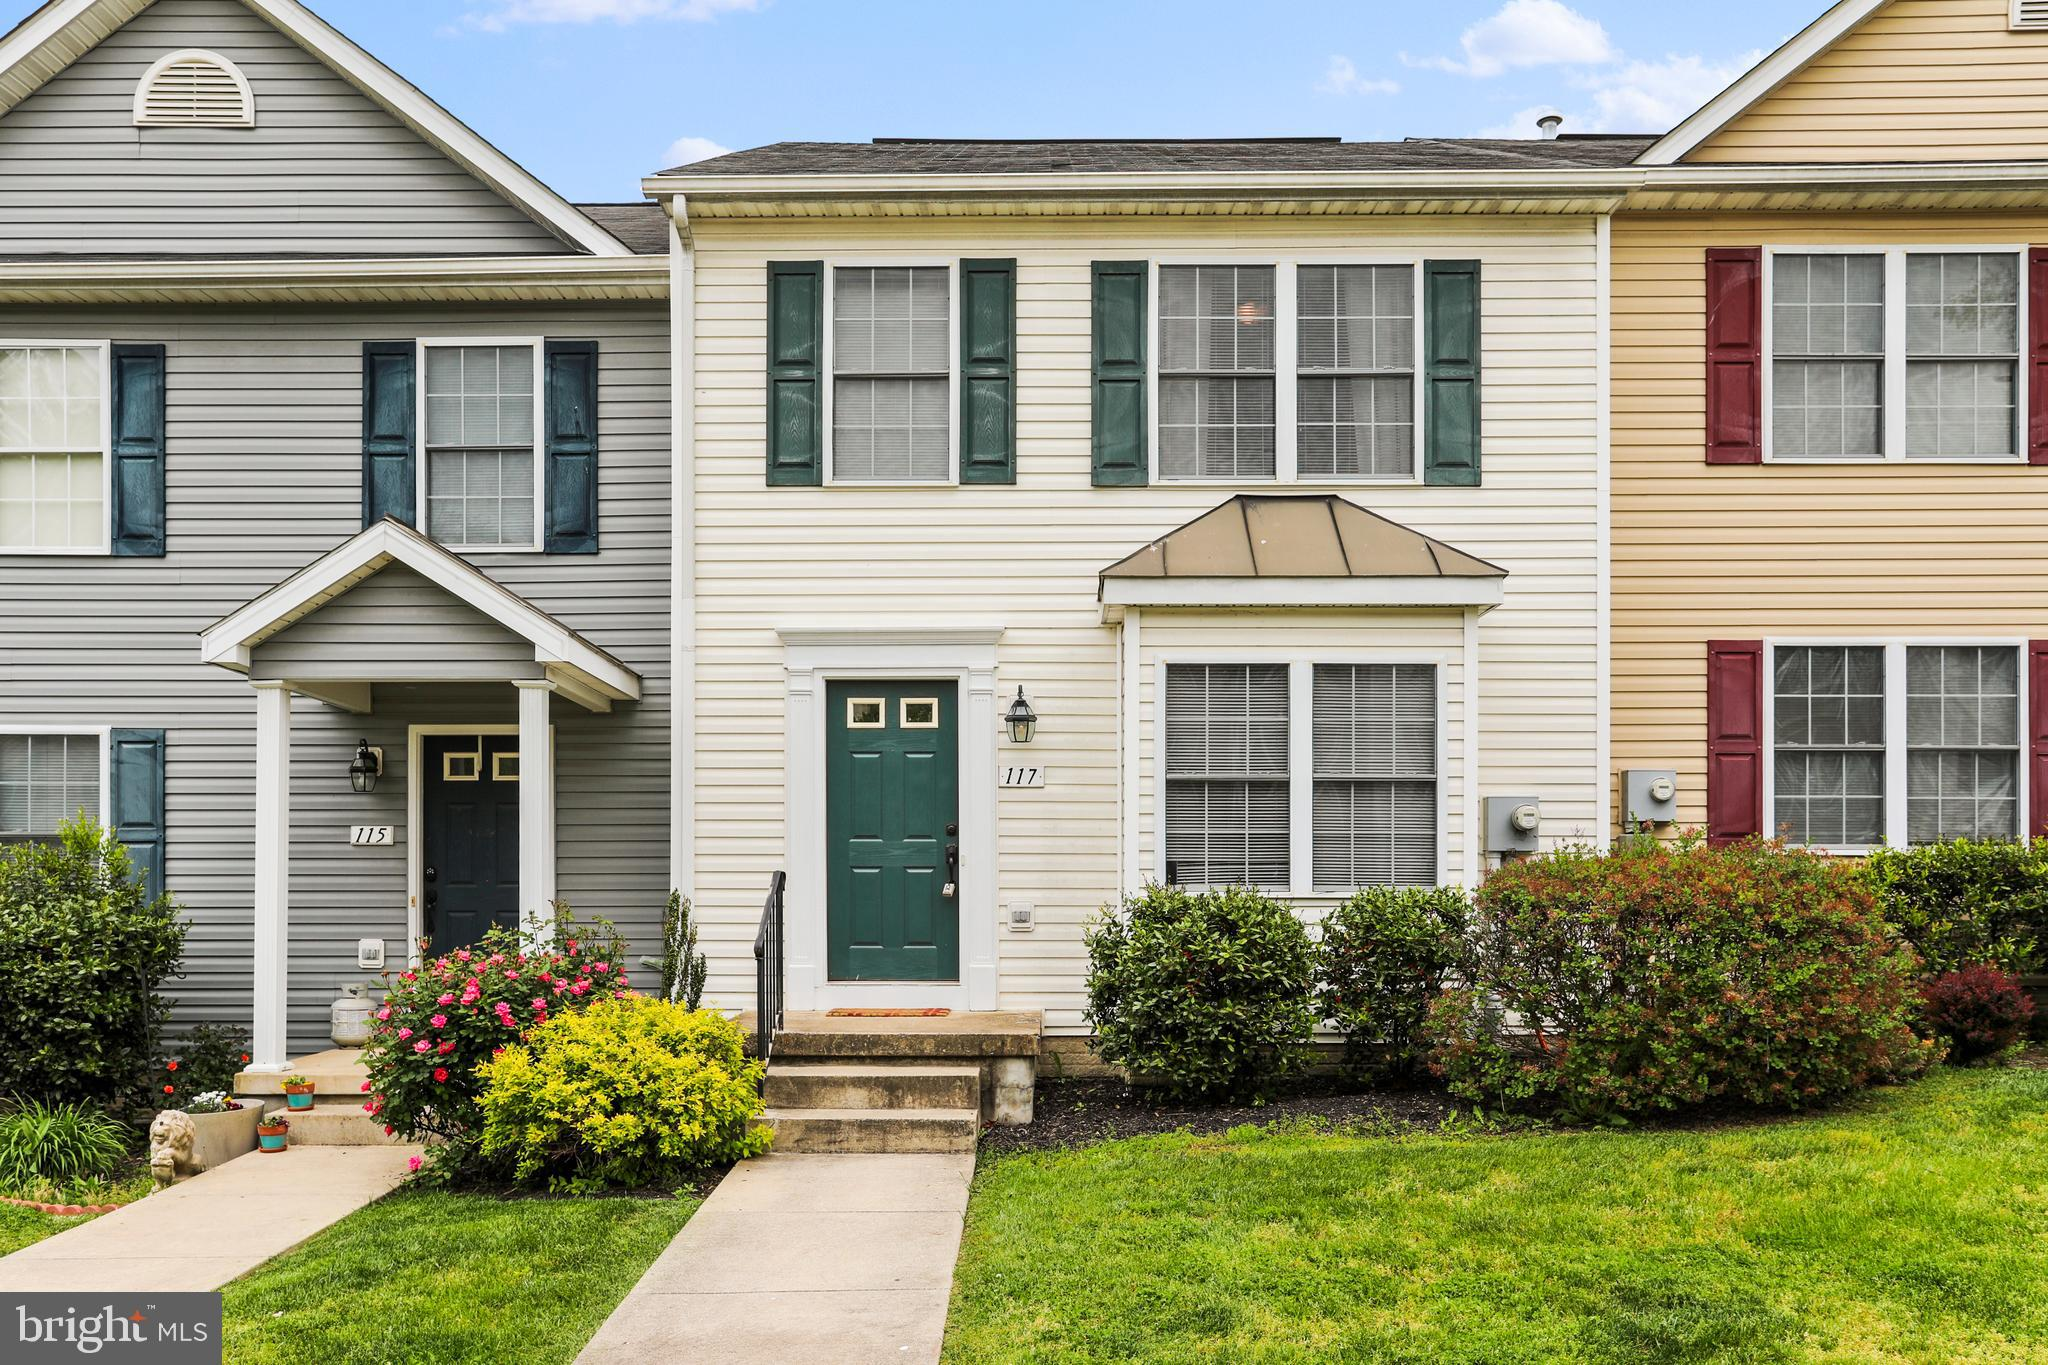 Upscale 3 Level Townhome features 3 bedrooms, 1.5 baths, living room, kitchen, dining area, rear dec